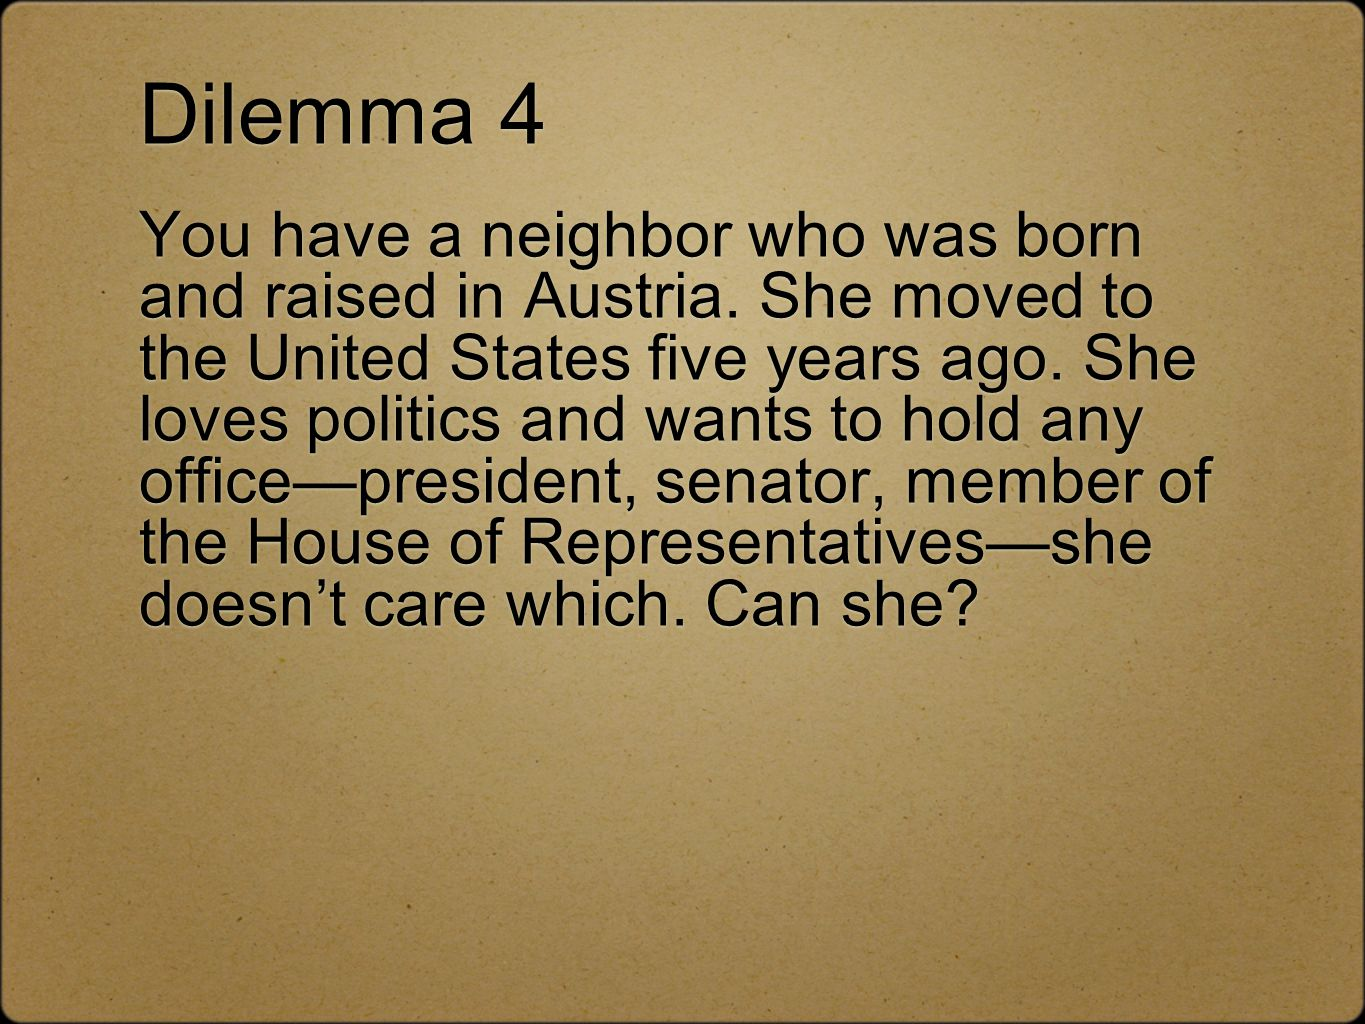 Dilemma 4 You have a neighbor who was born and raised in Austria. She moved to the United States five years ago. She loves politics and wants to hold